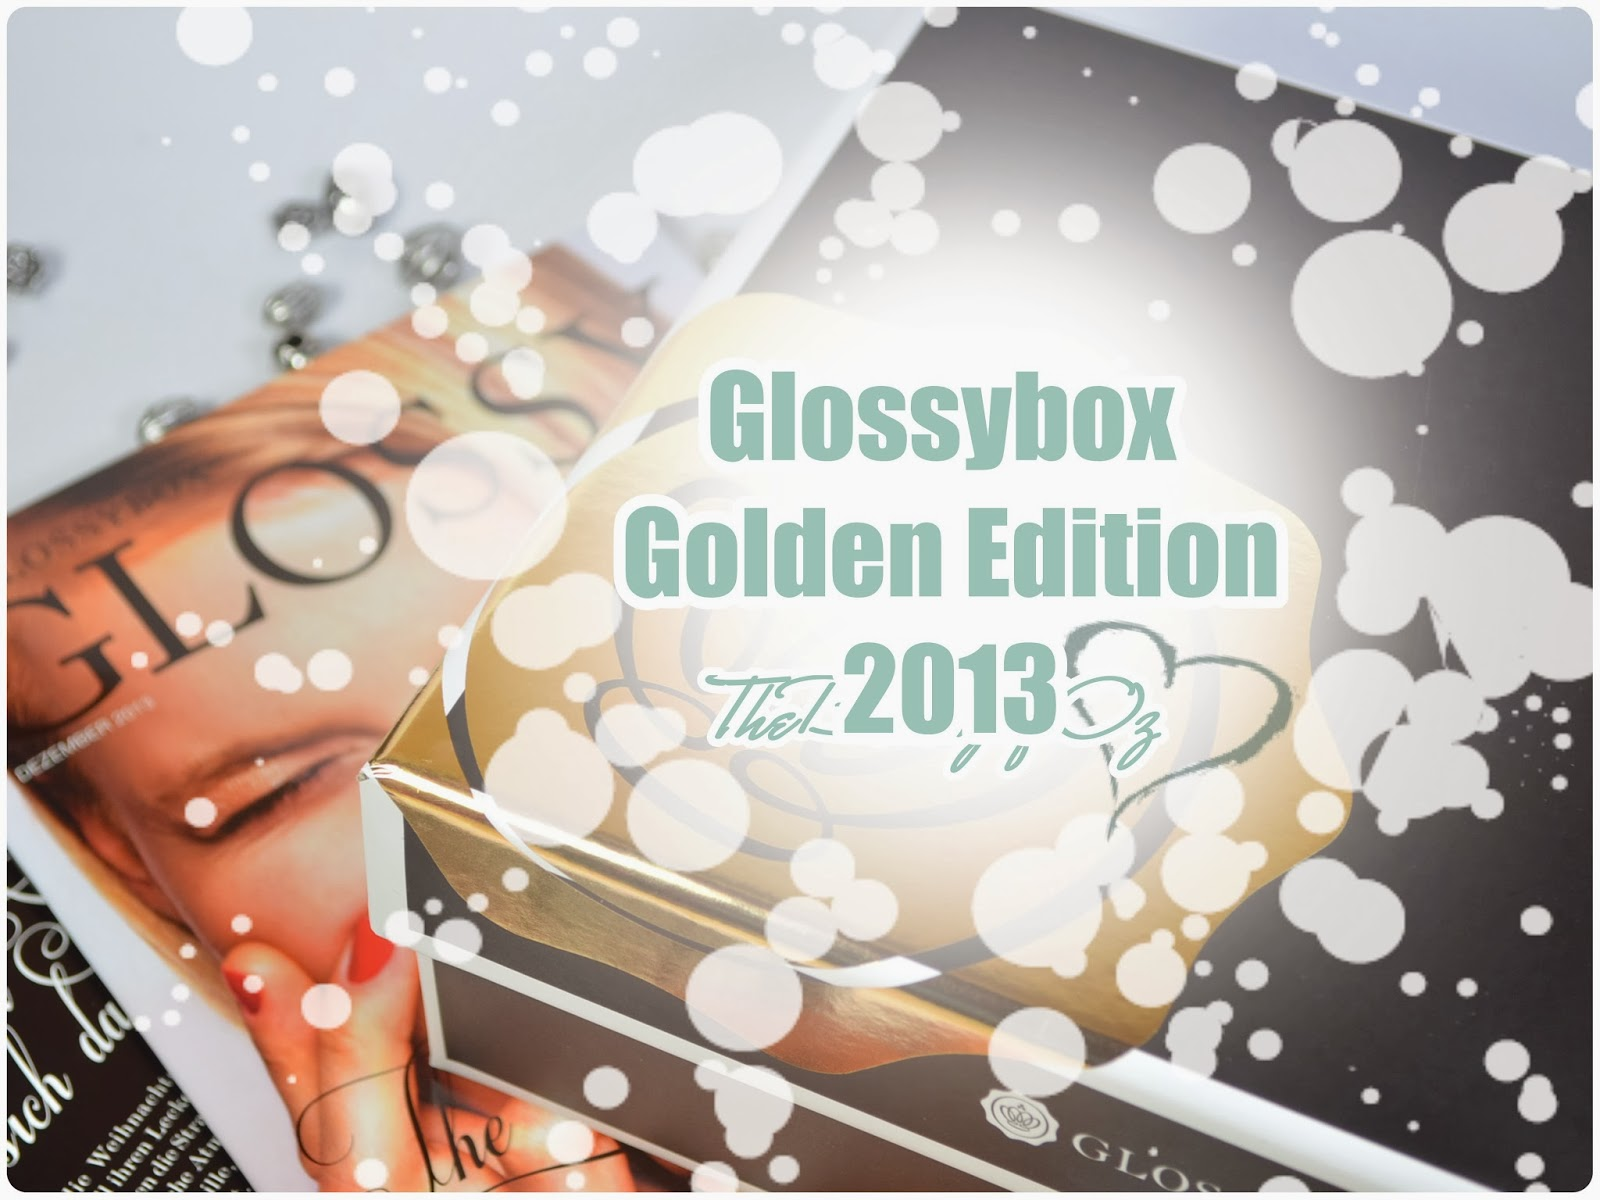 Glossybox Golden Box Weihnachten 2013